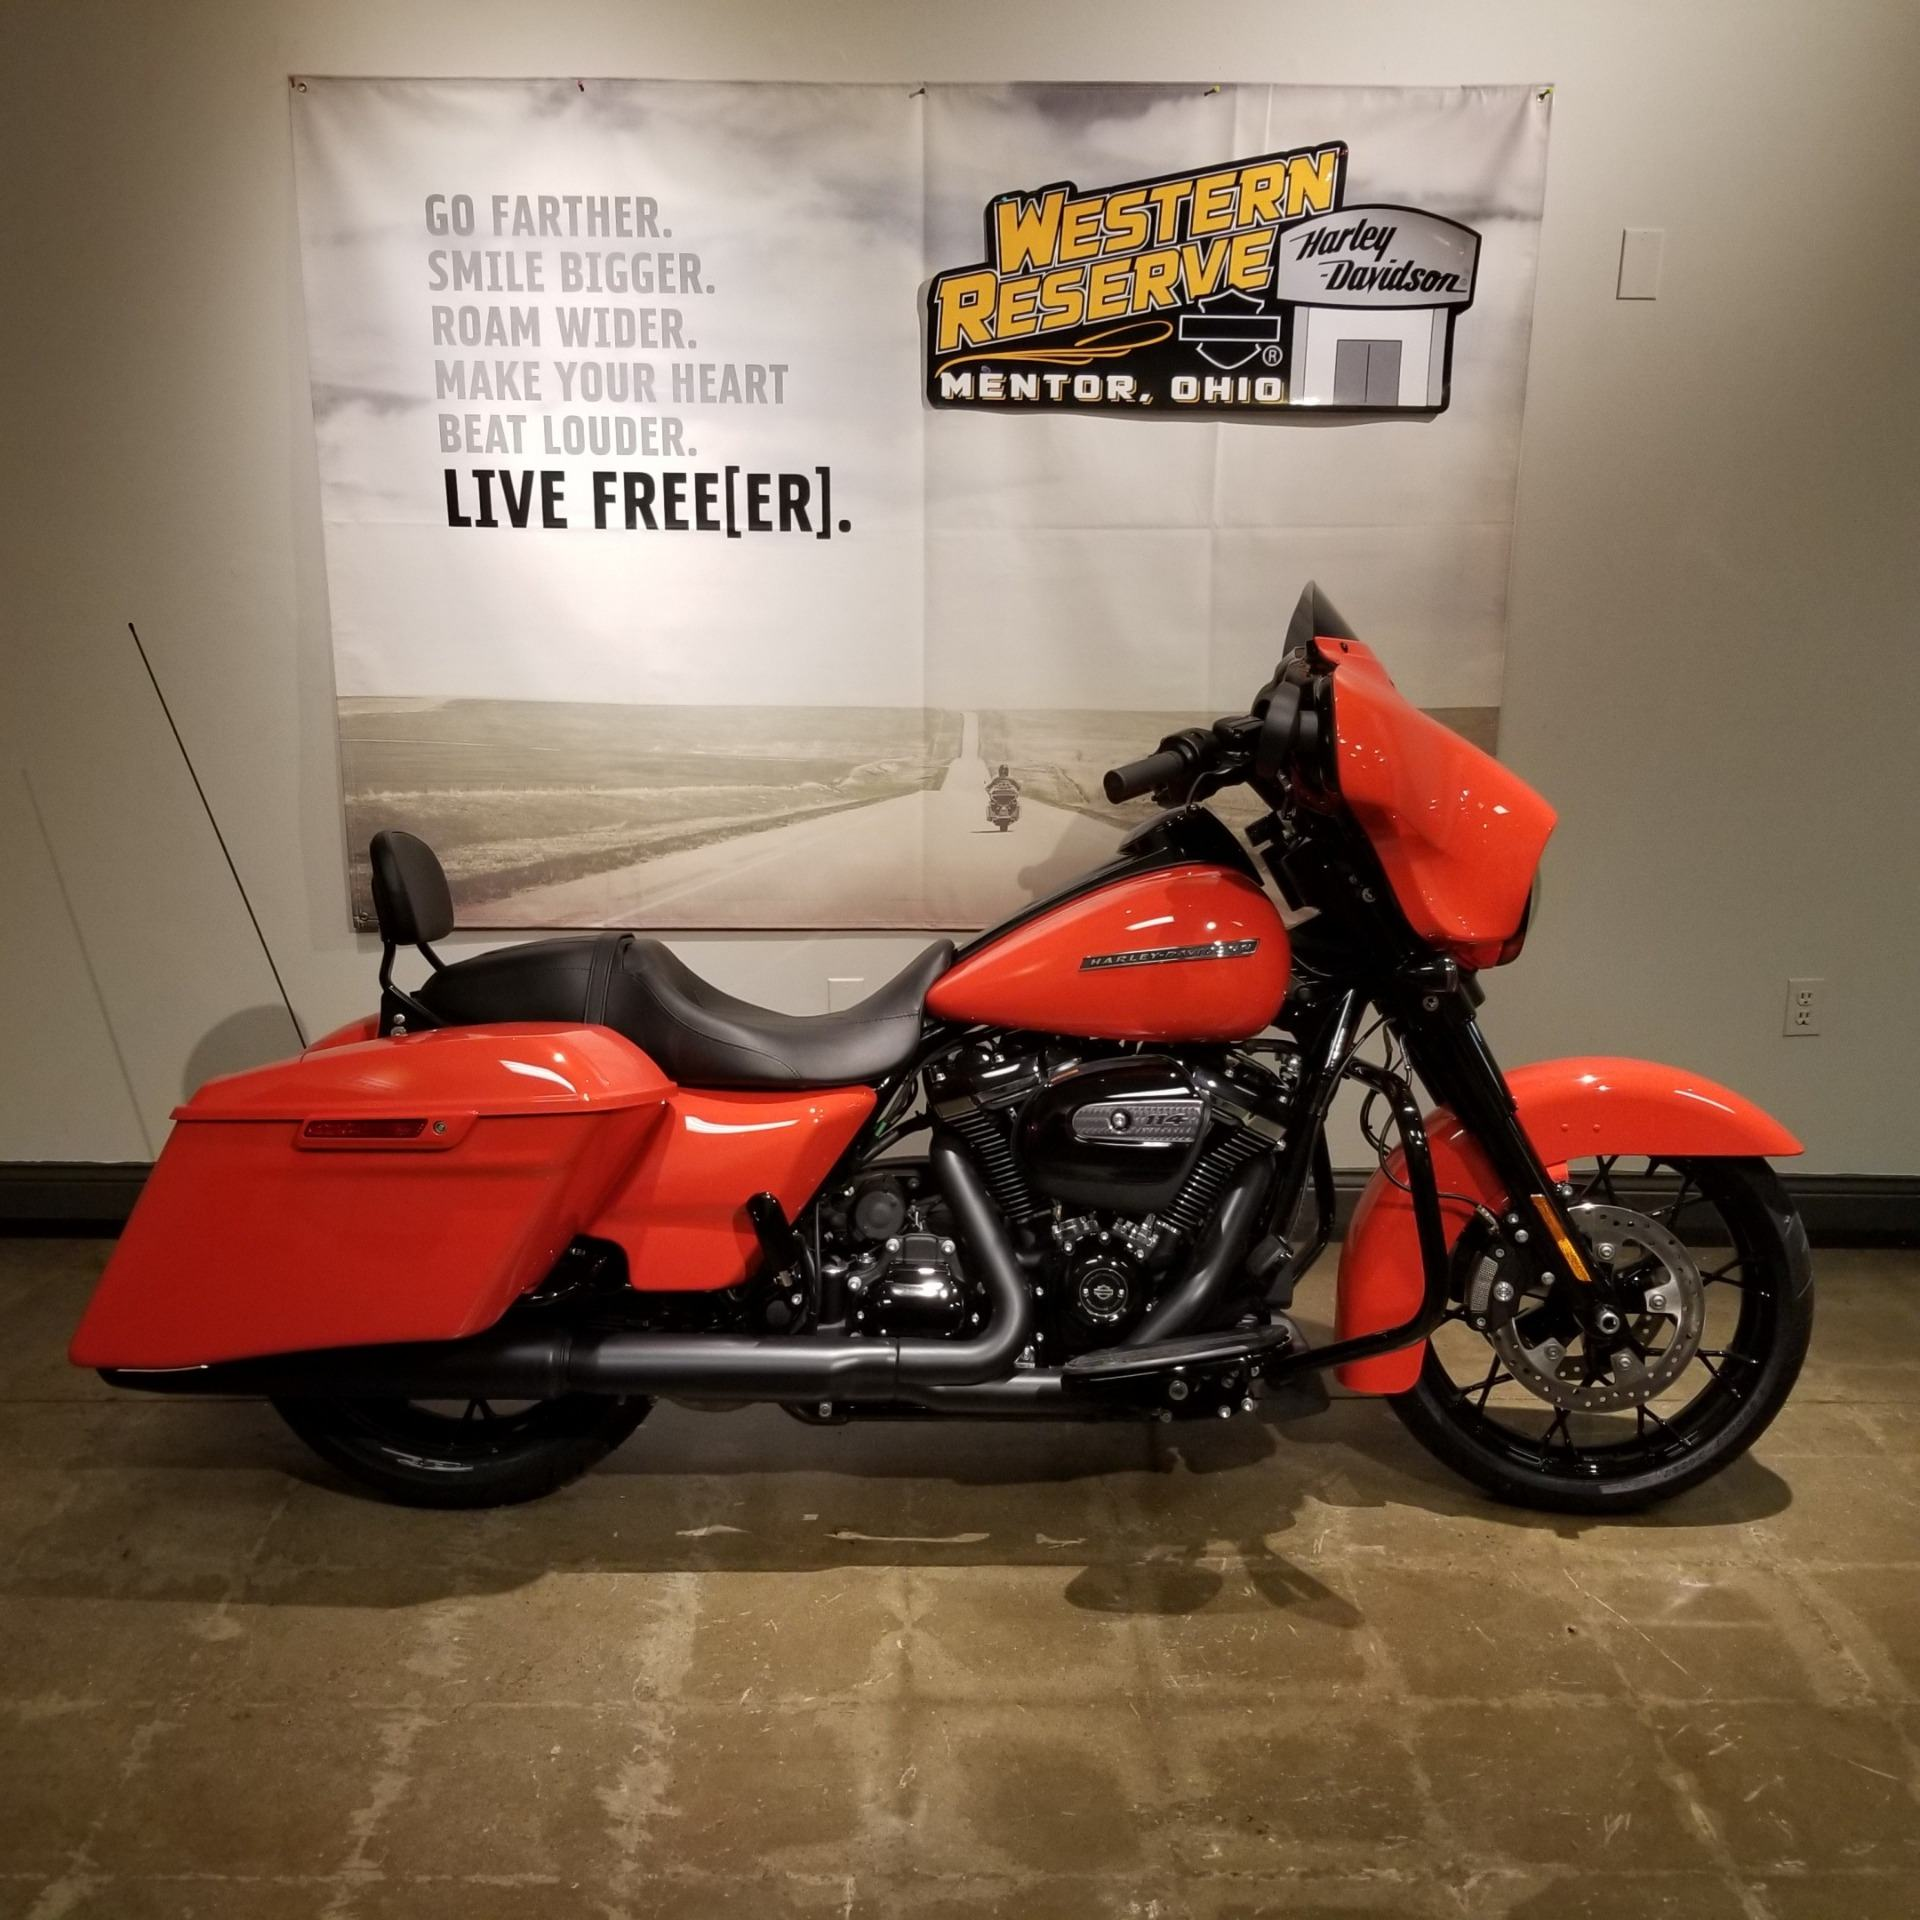 2020 Harley-Davidson Street Glide® Special in Mentor, Ohio - Photo 1